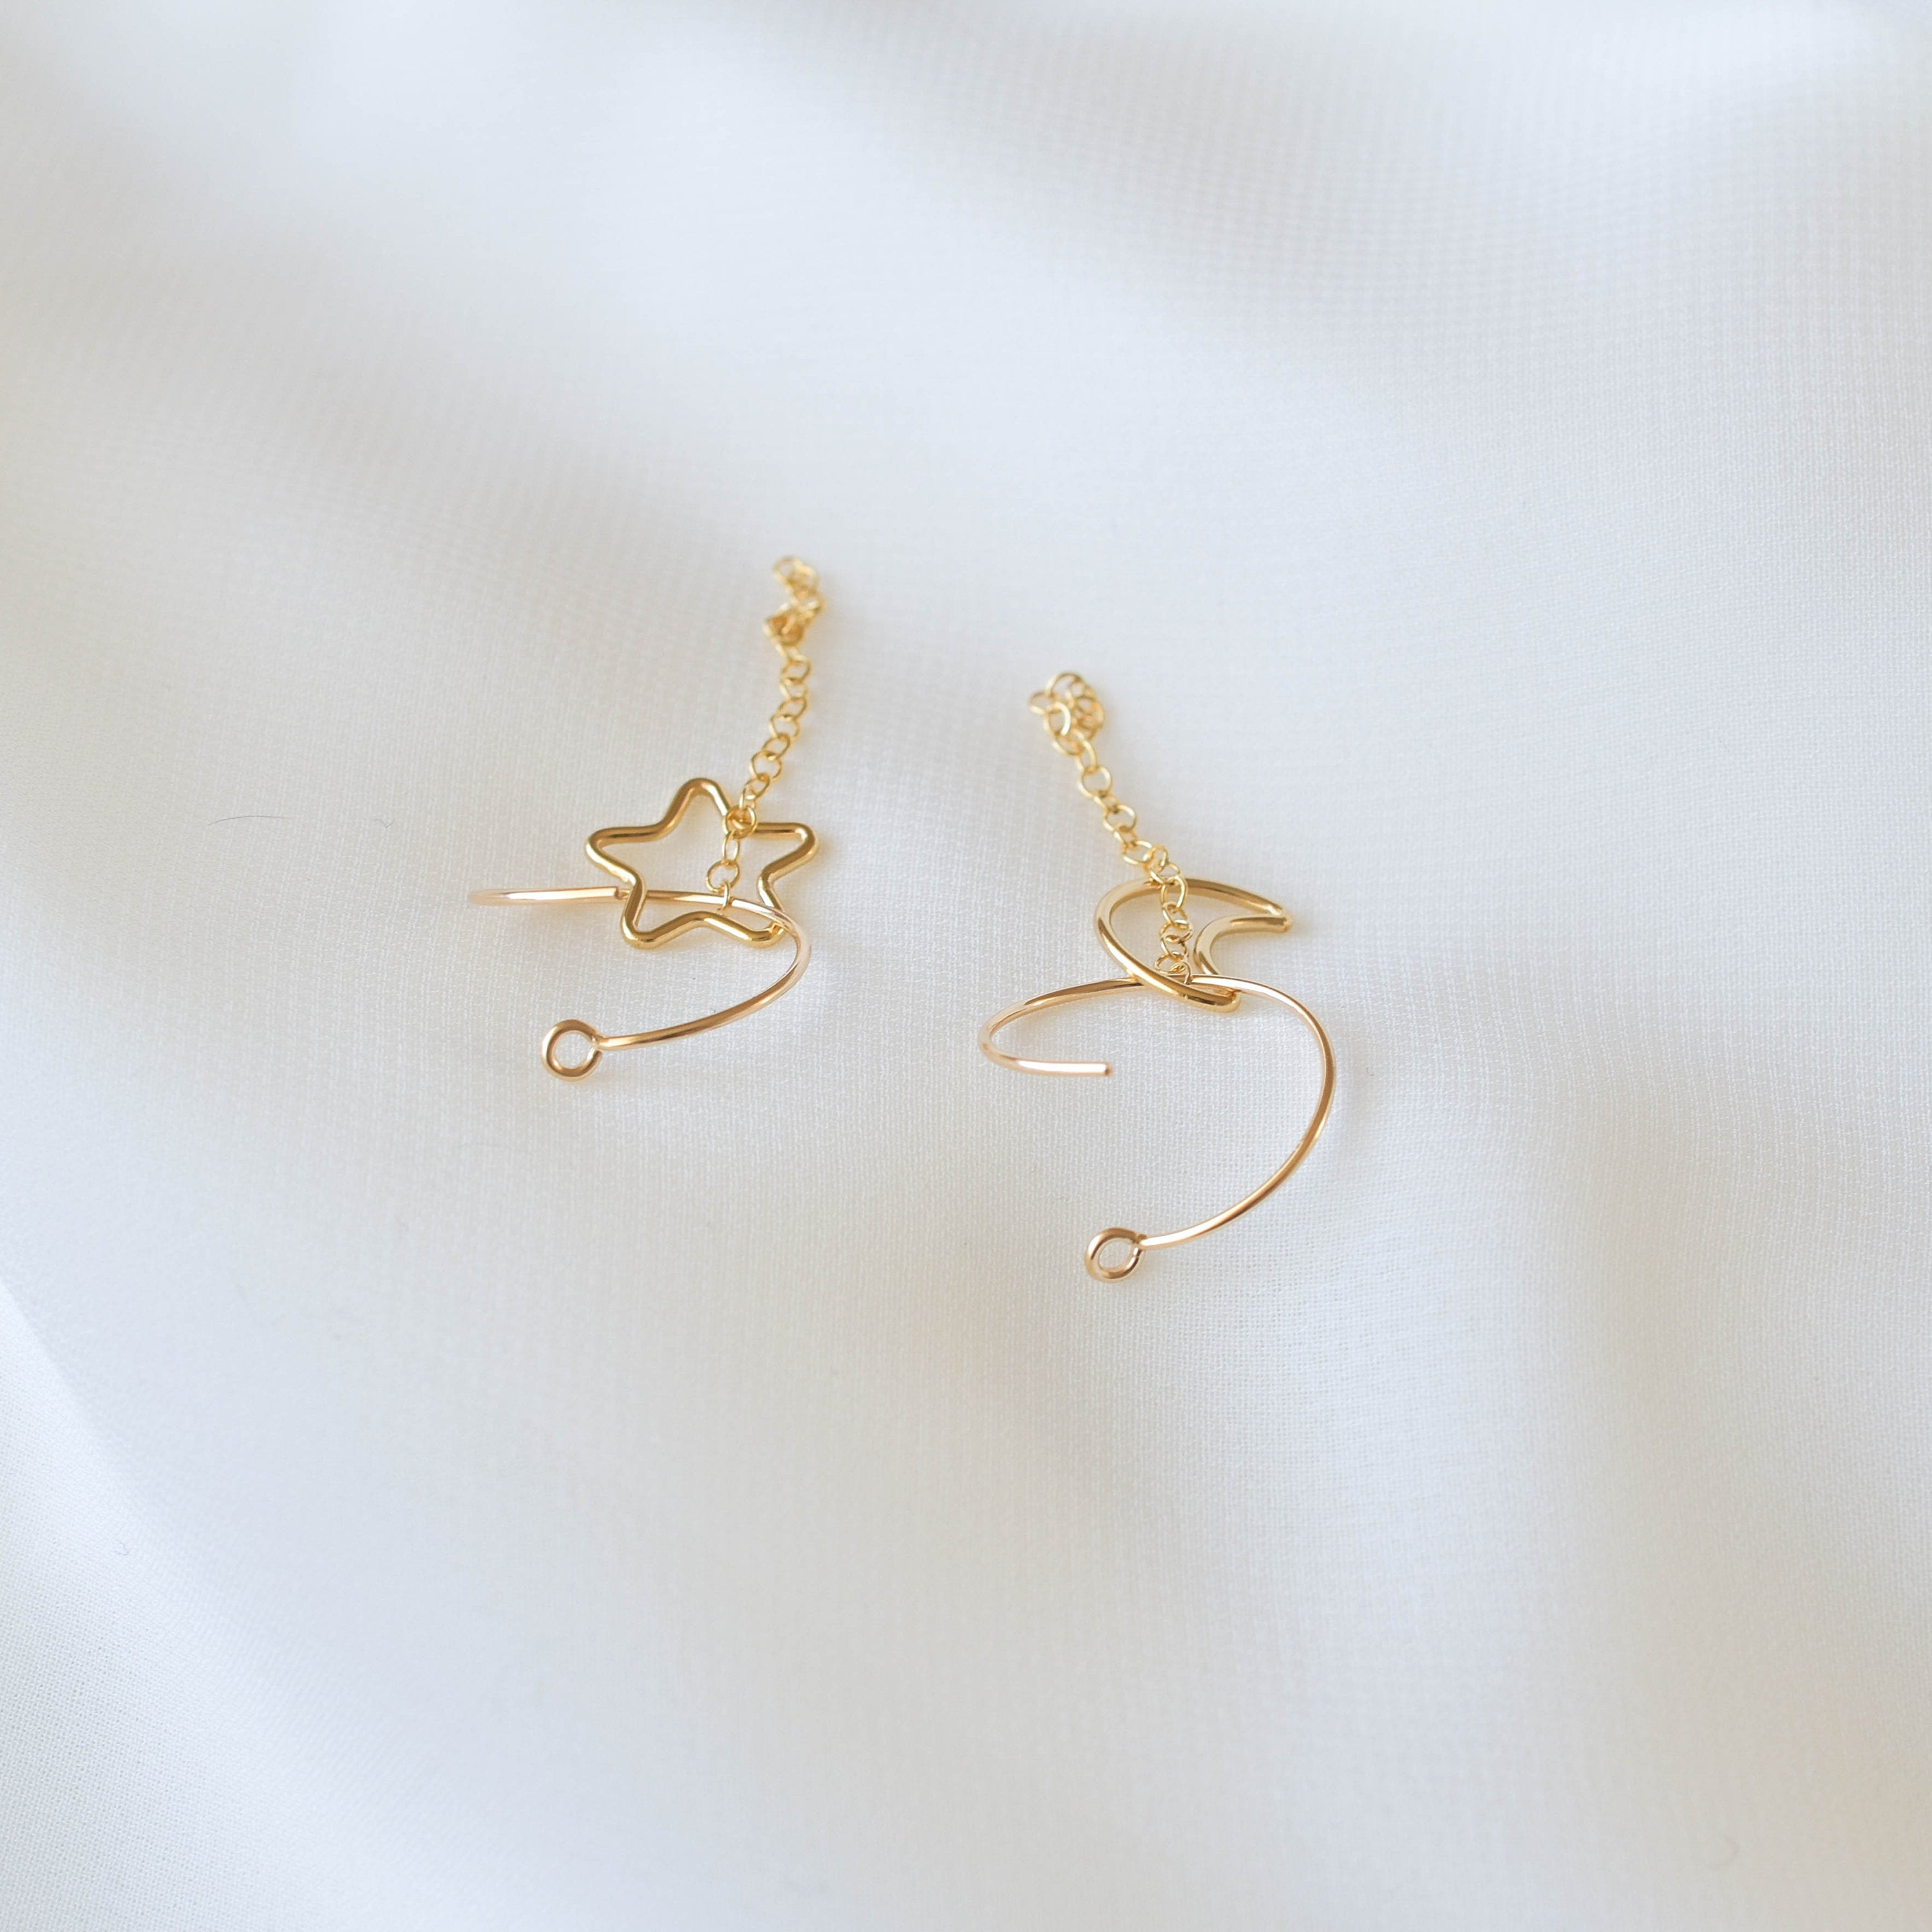 Dreamy Hoop Earrings